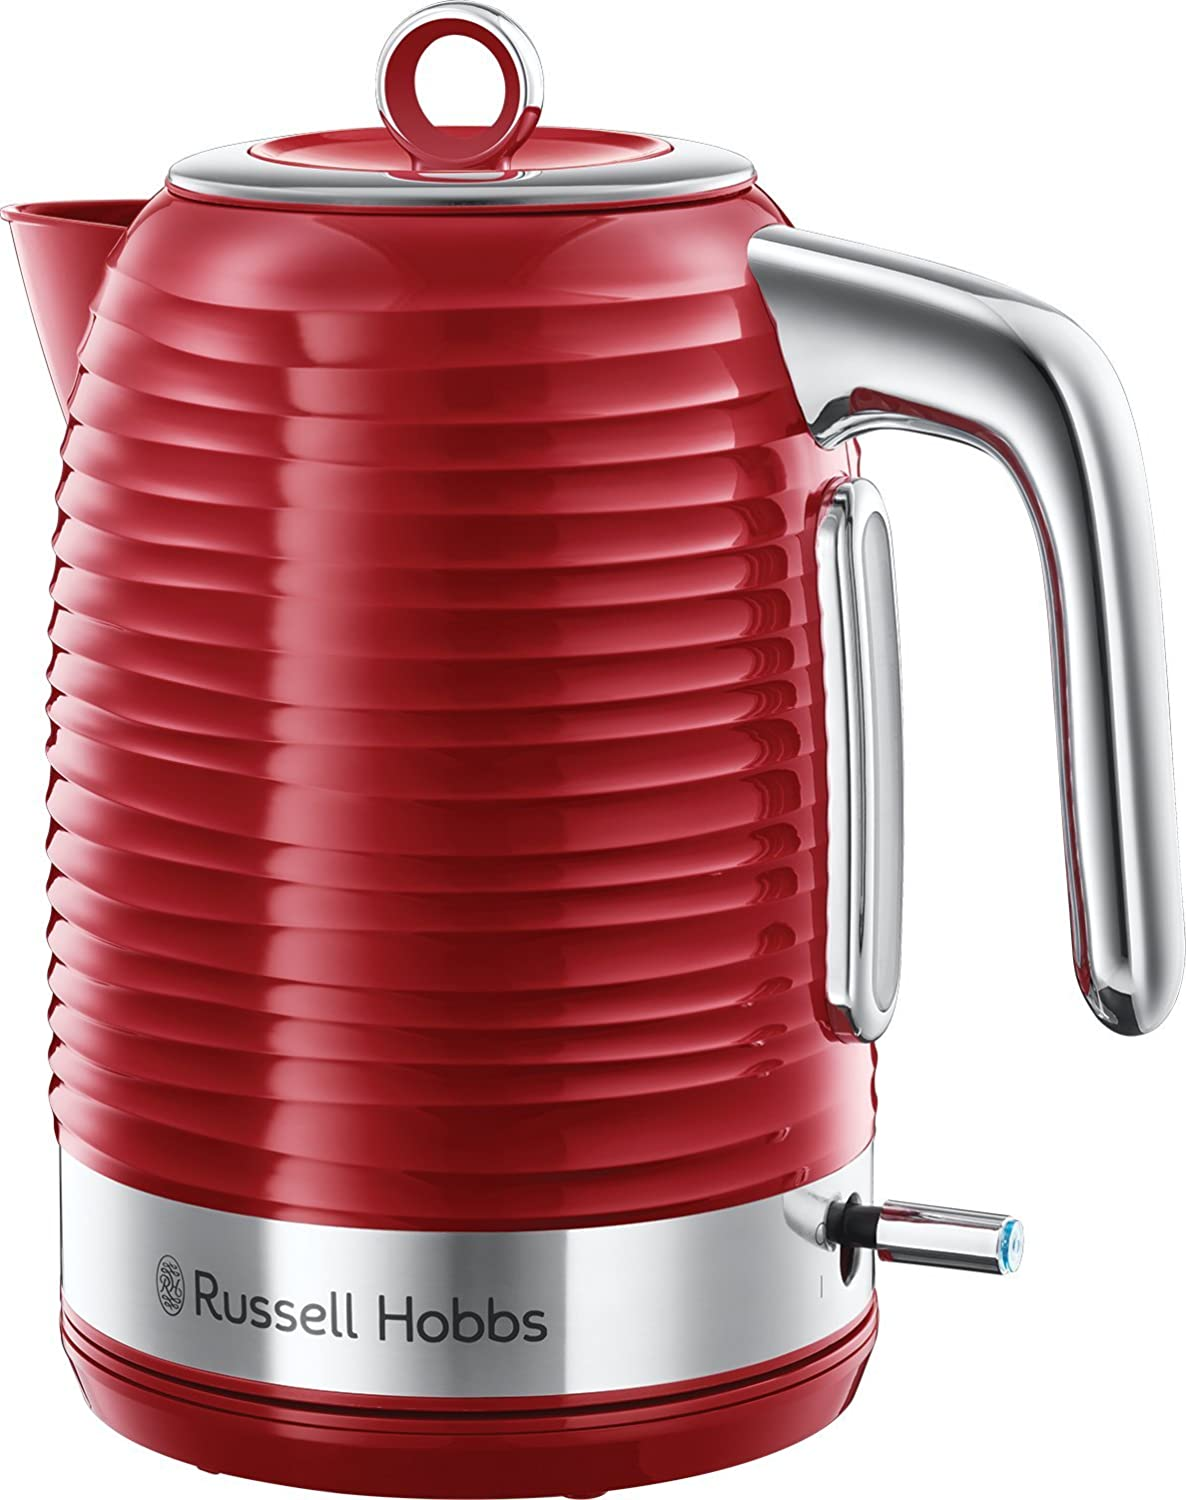 Russell Hobbs Inspire 1.7L 3000W Kettle